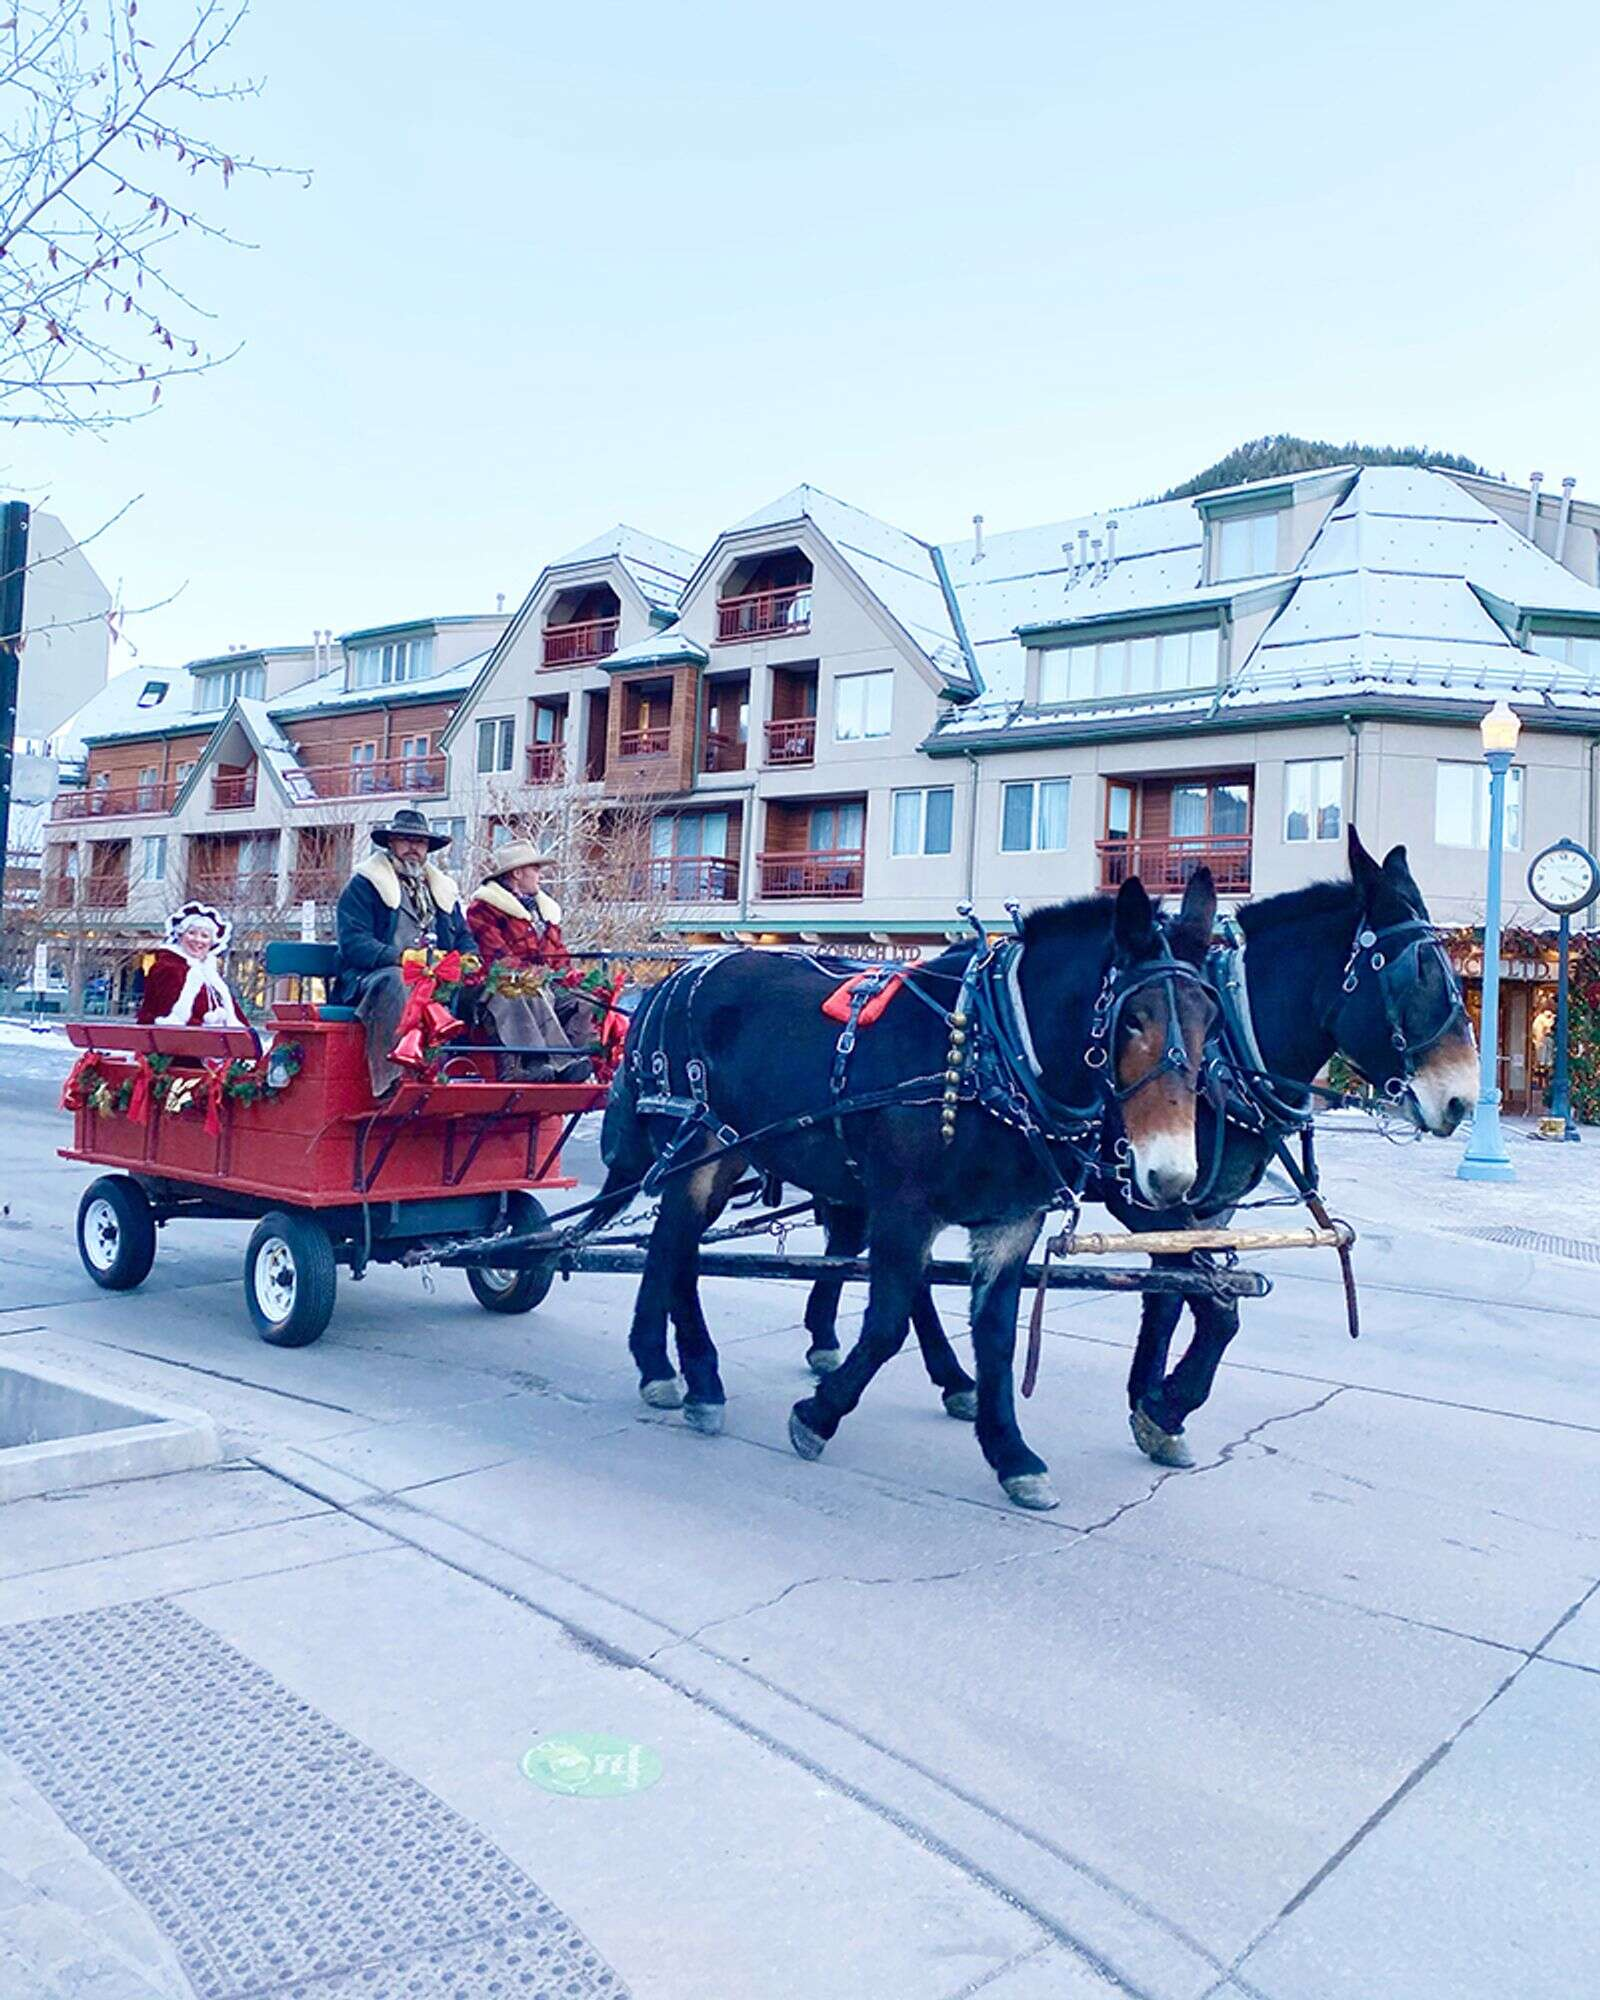 Santa and Mrs. Claus on a carriage ride around town.